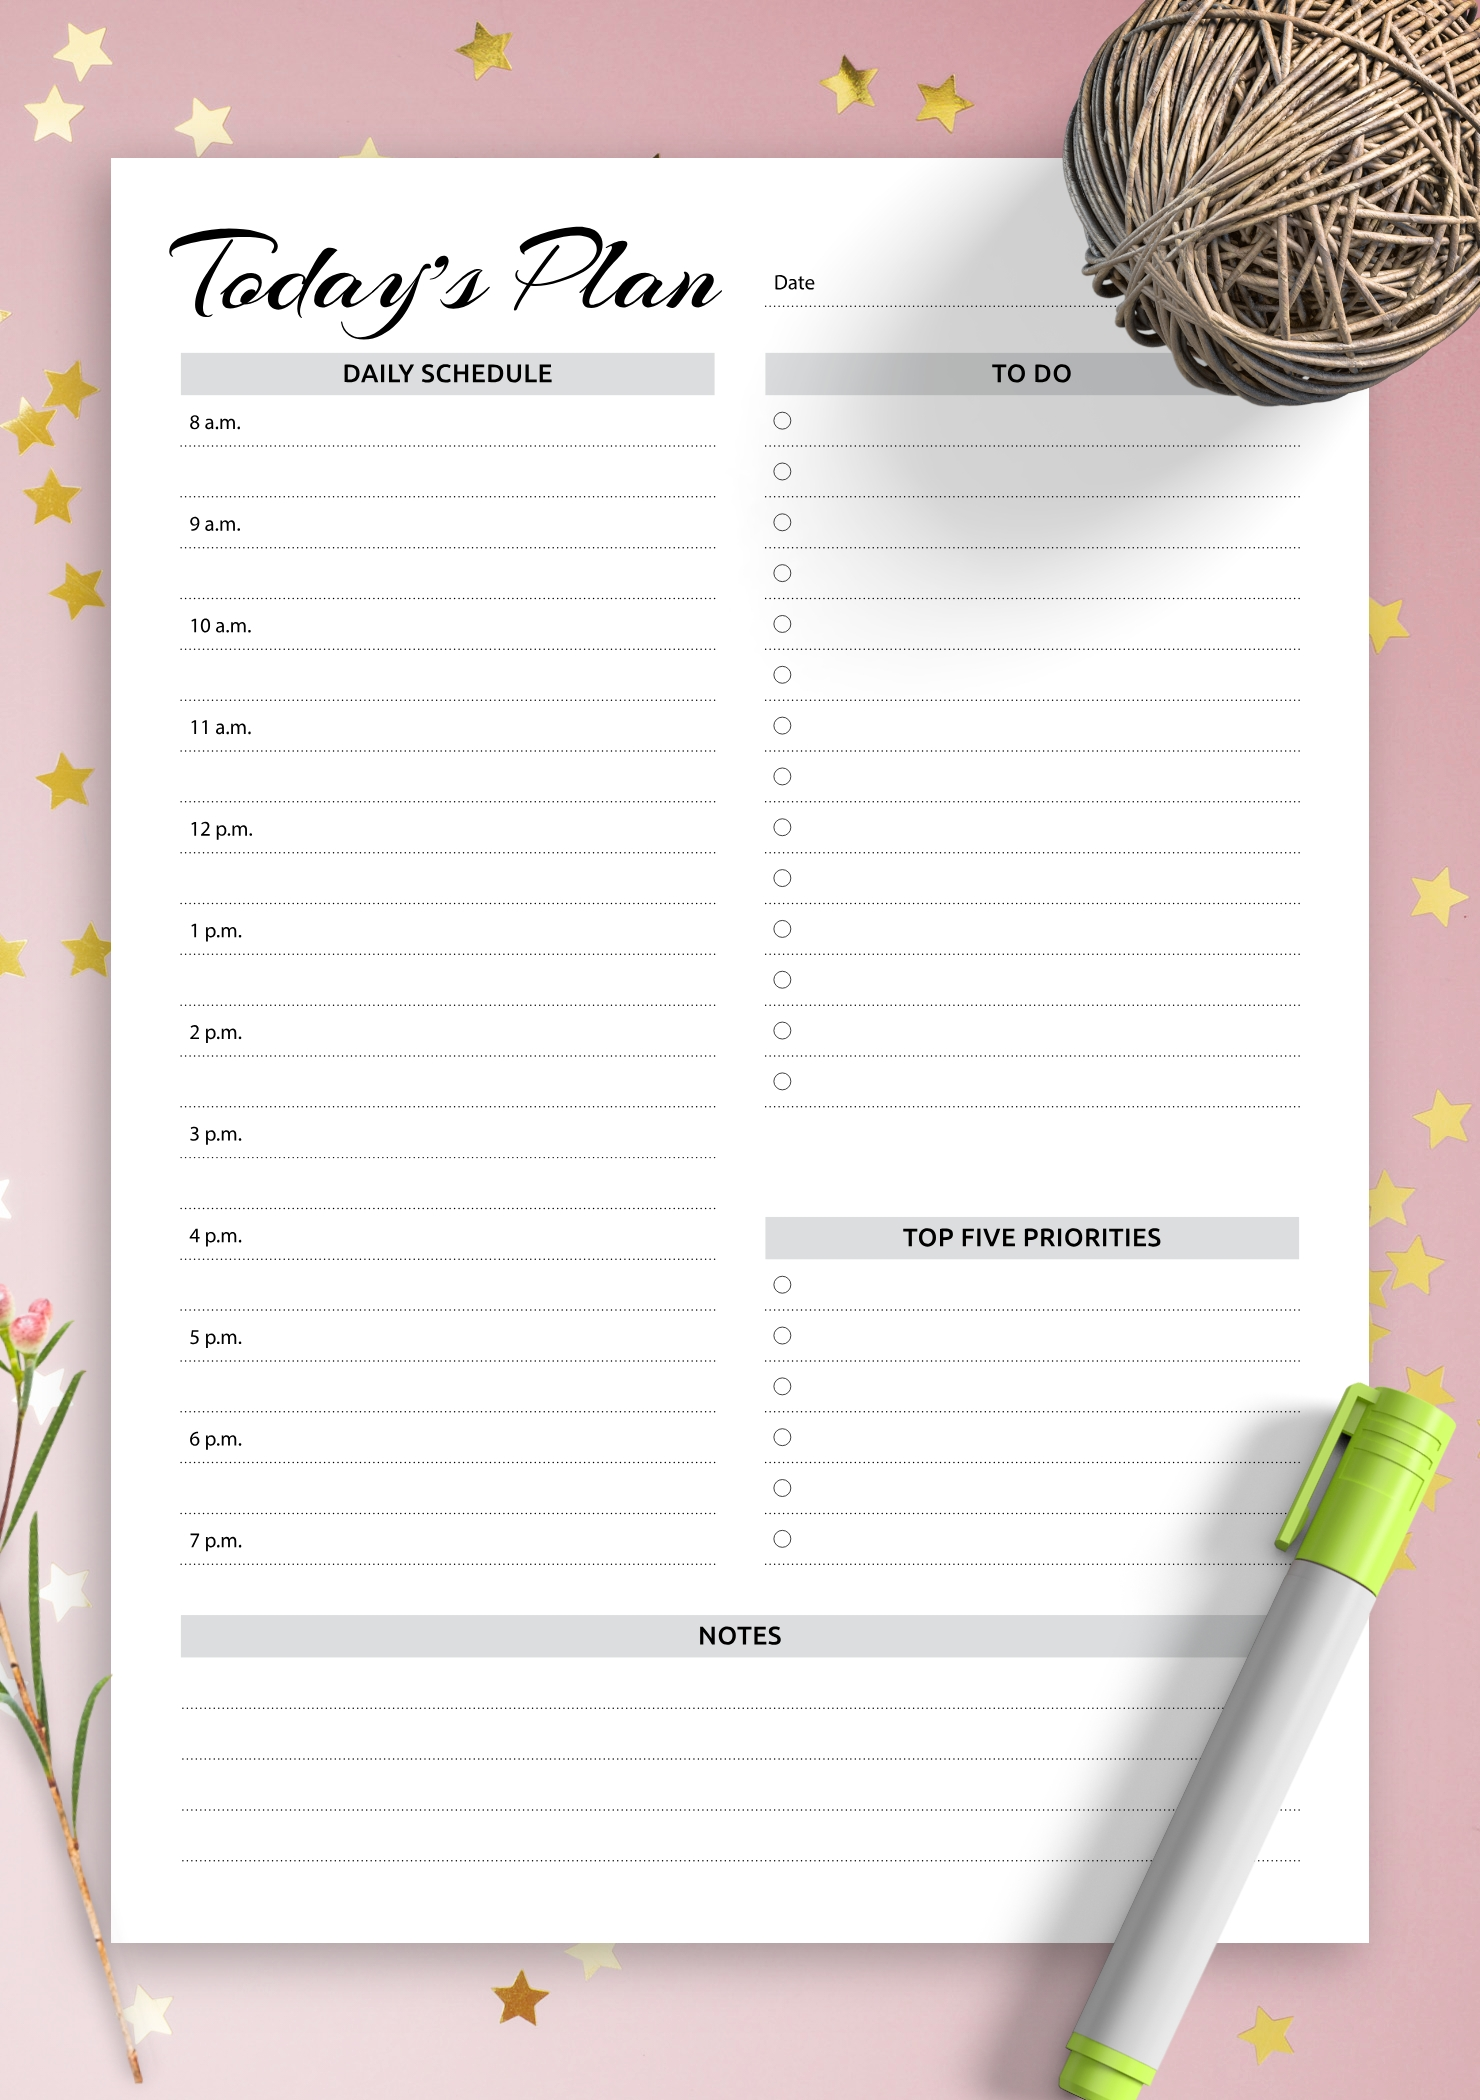 Download Printable Daily Planner With Hourly Schedule & To-Calendar January 2021 Hourly Daily Task List Template